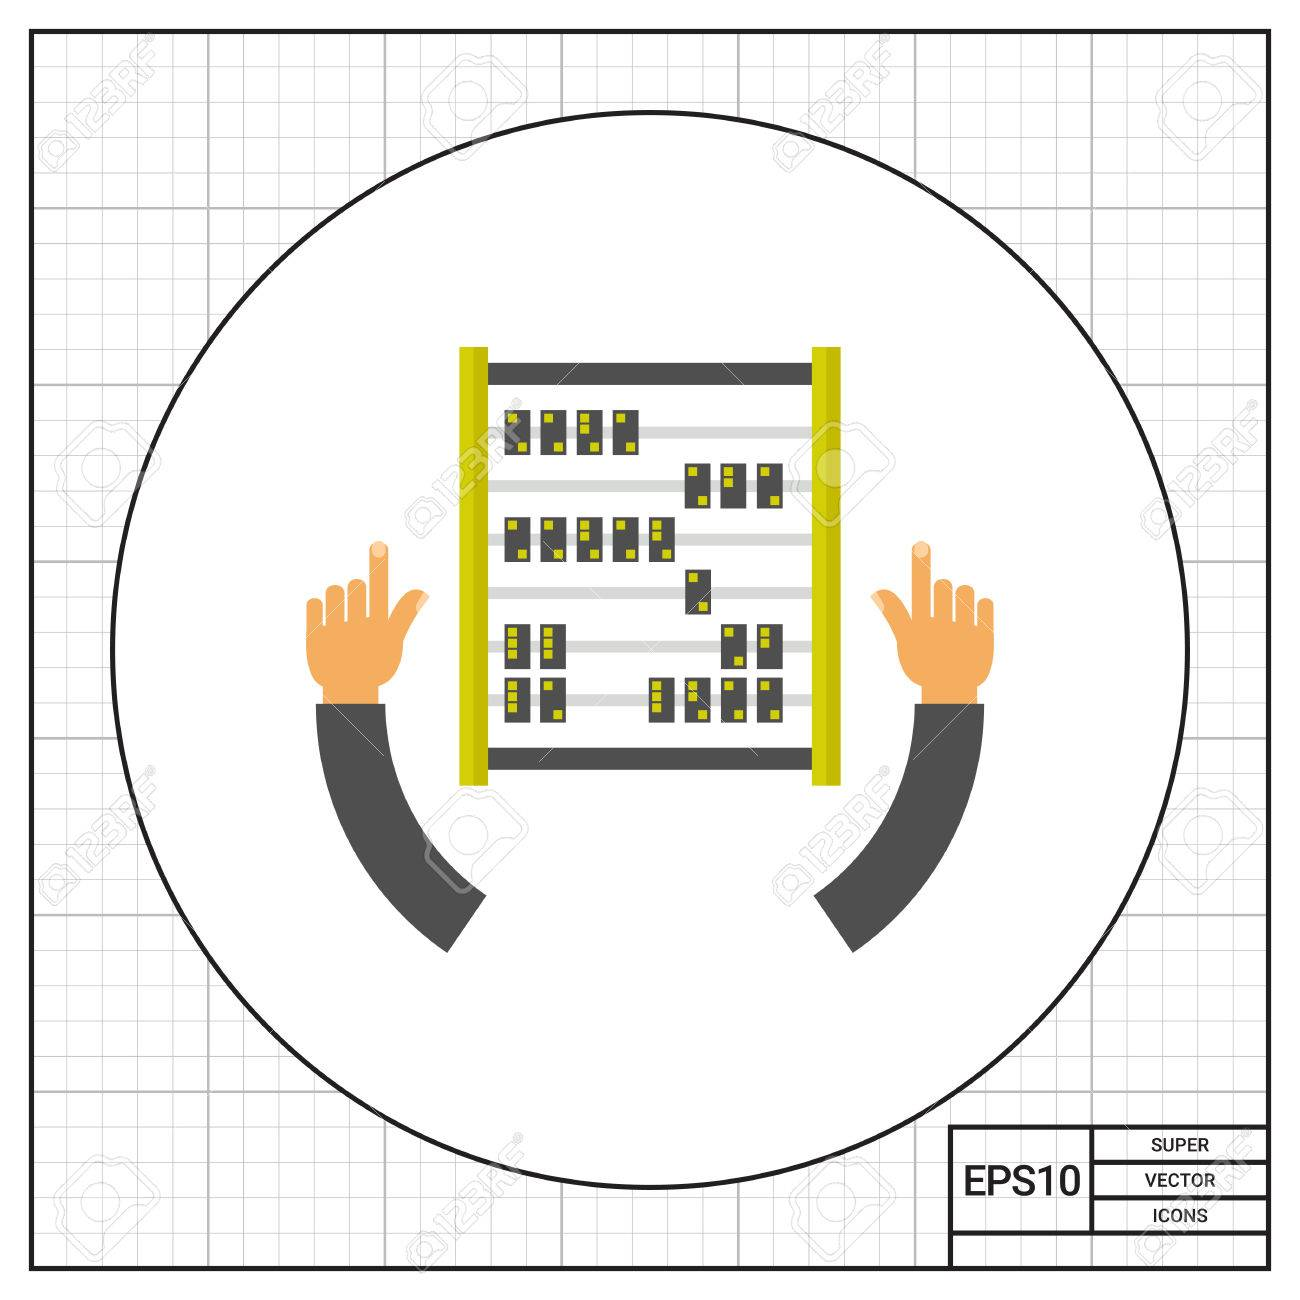 Illustration of human hands and counting frame  Analytics, information,